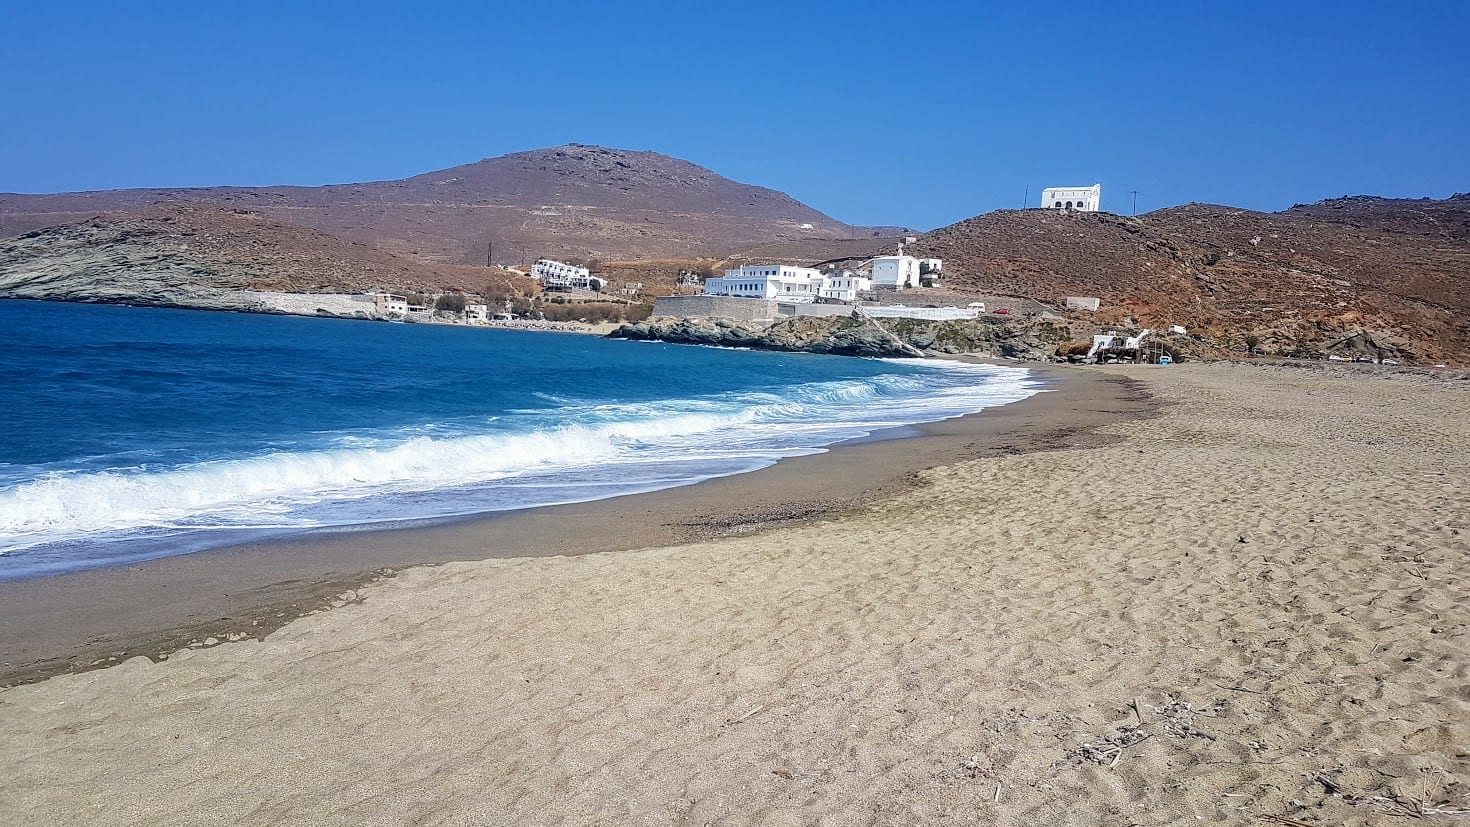 Perfect beach weather on the Greek islands in September